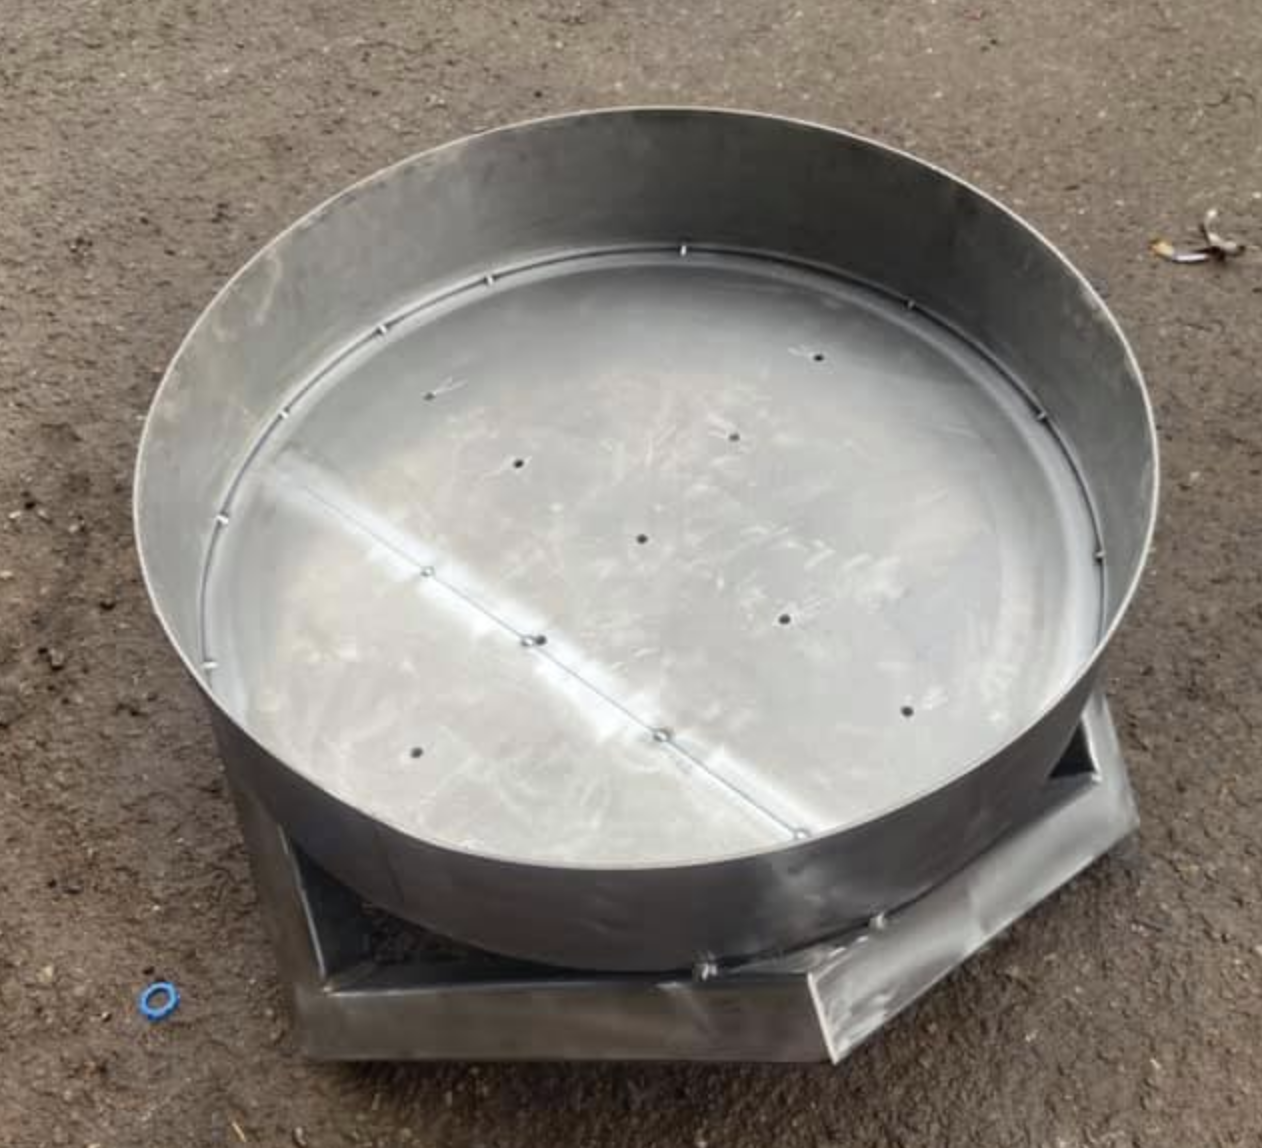 900mm diameter fire pit